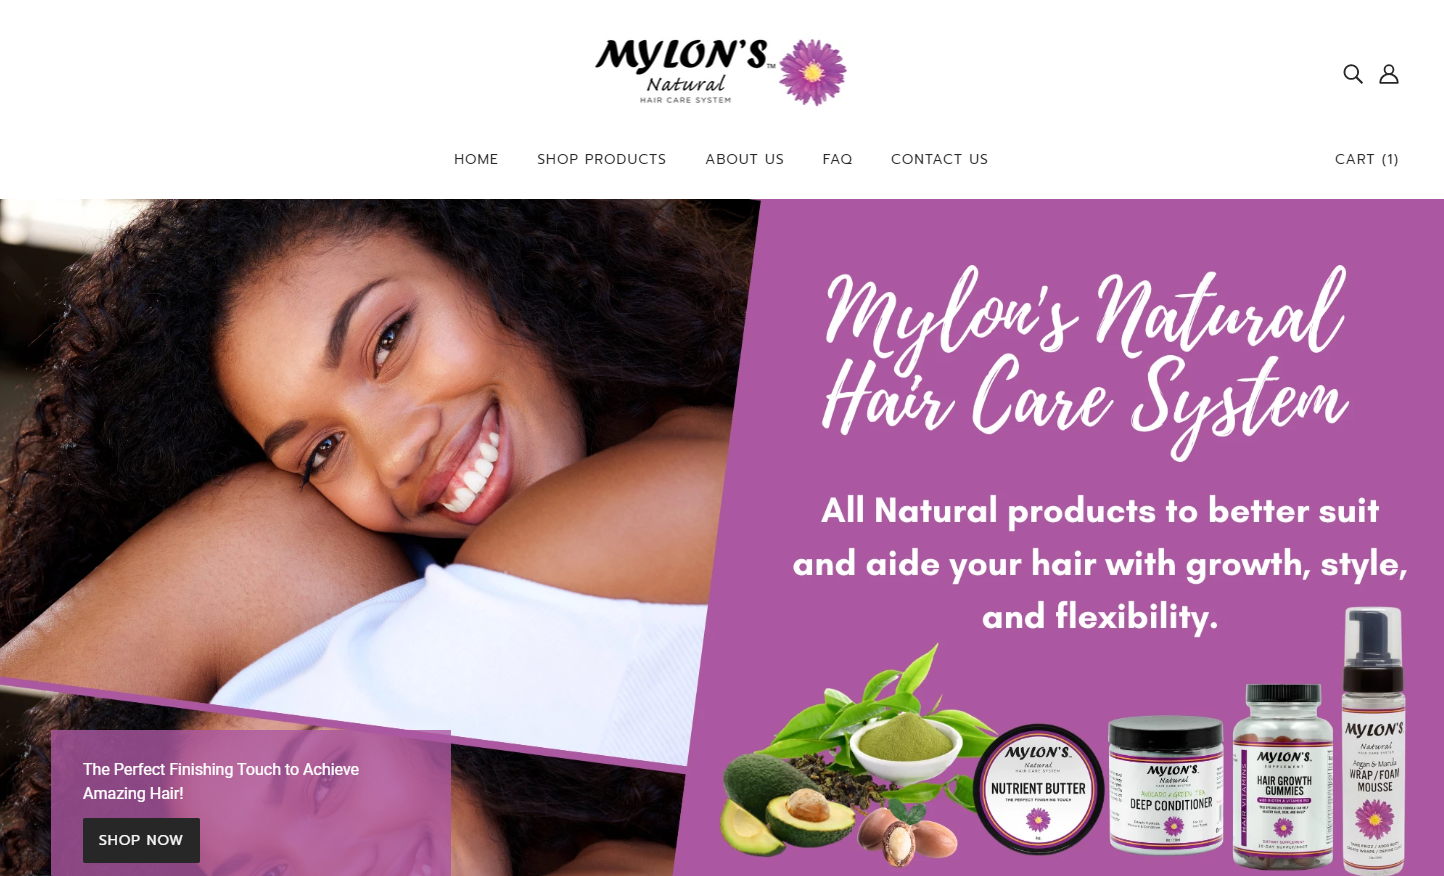 Mylons Hair Care System Website Homepage